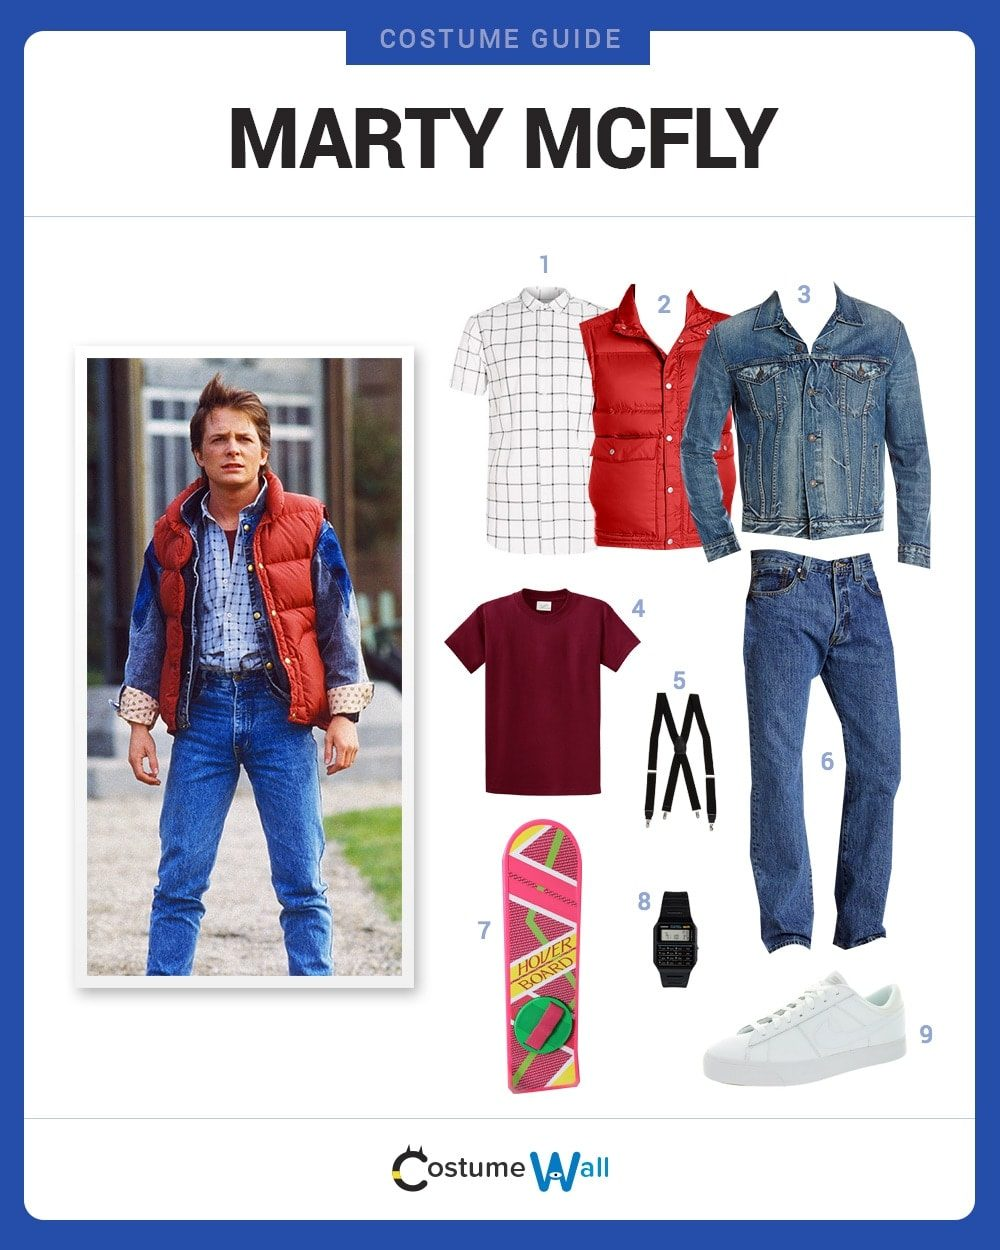 Marty McFly Costume Guide